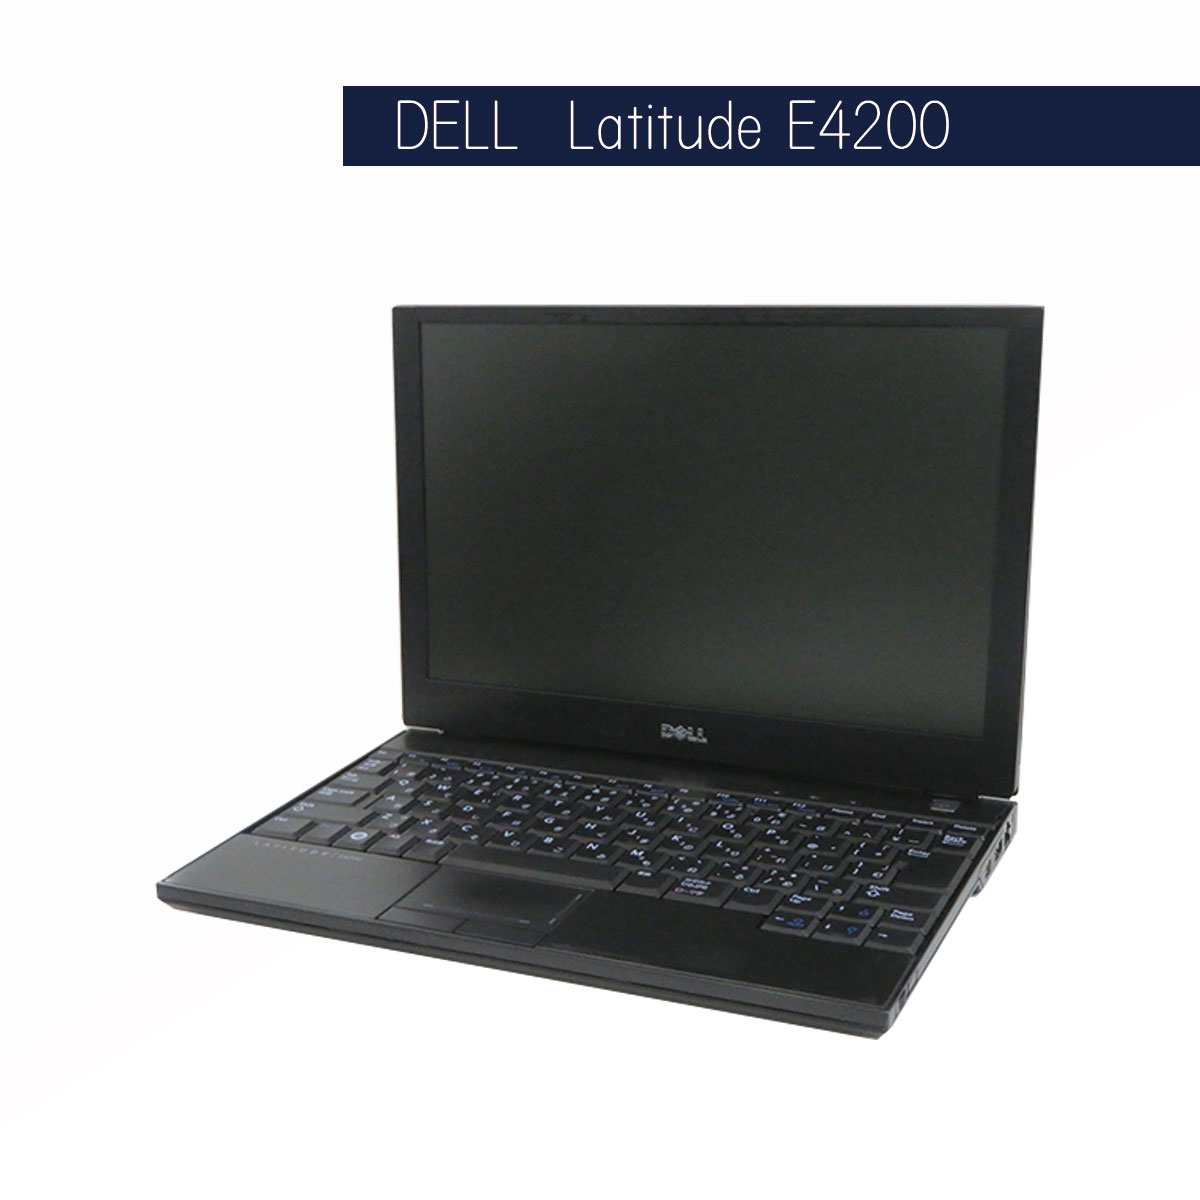 DELL Latitude E4200 Core2Duo U9400 WinXP Pro 32bit